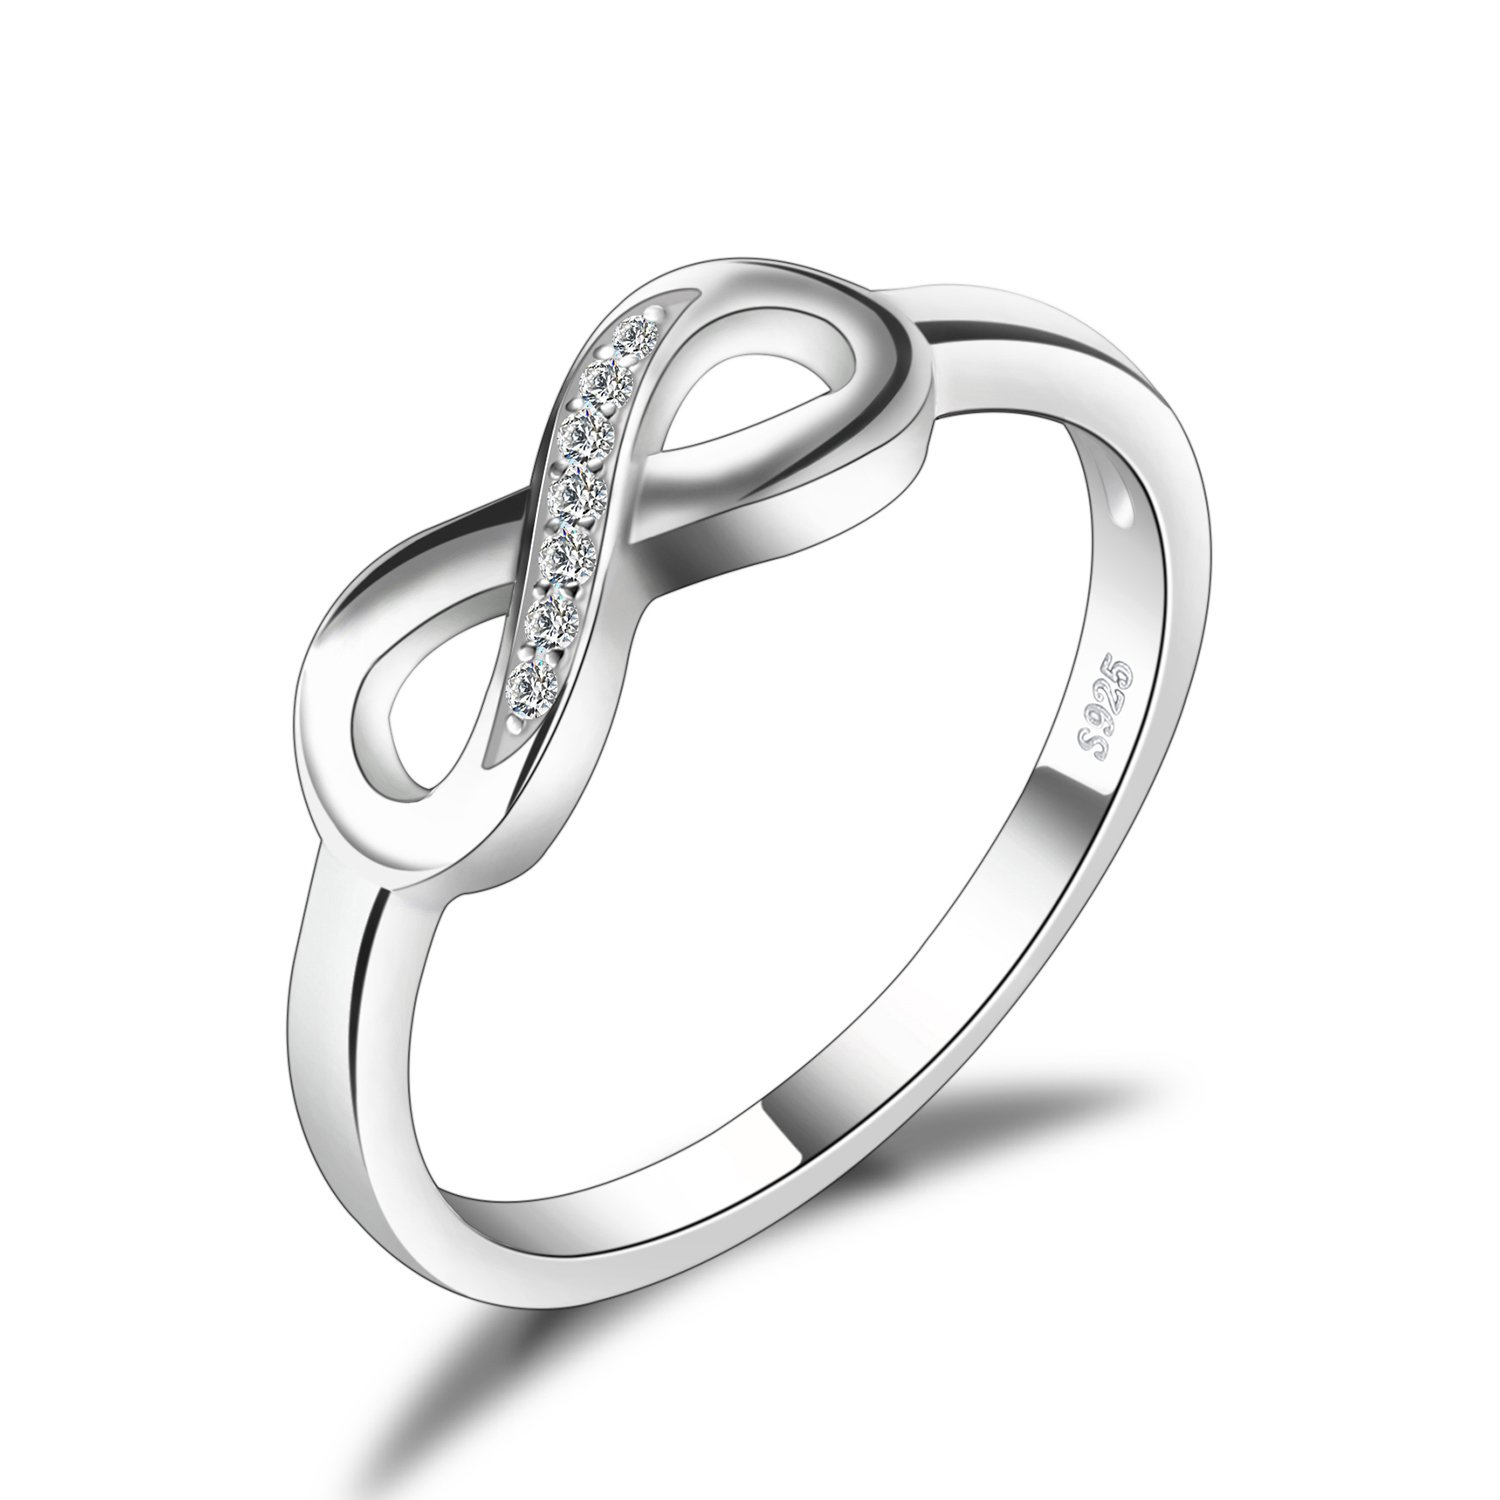 619029b27 JewelryPalace Infinity Forever Love Cubic Zirconia Anniversary Promise Ring  925 sterling silver rings: Amazon.co.uk: Jewellery